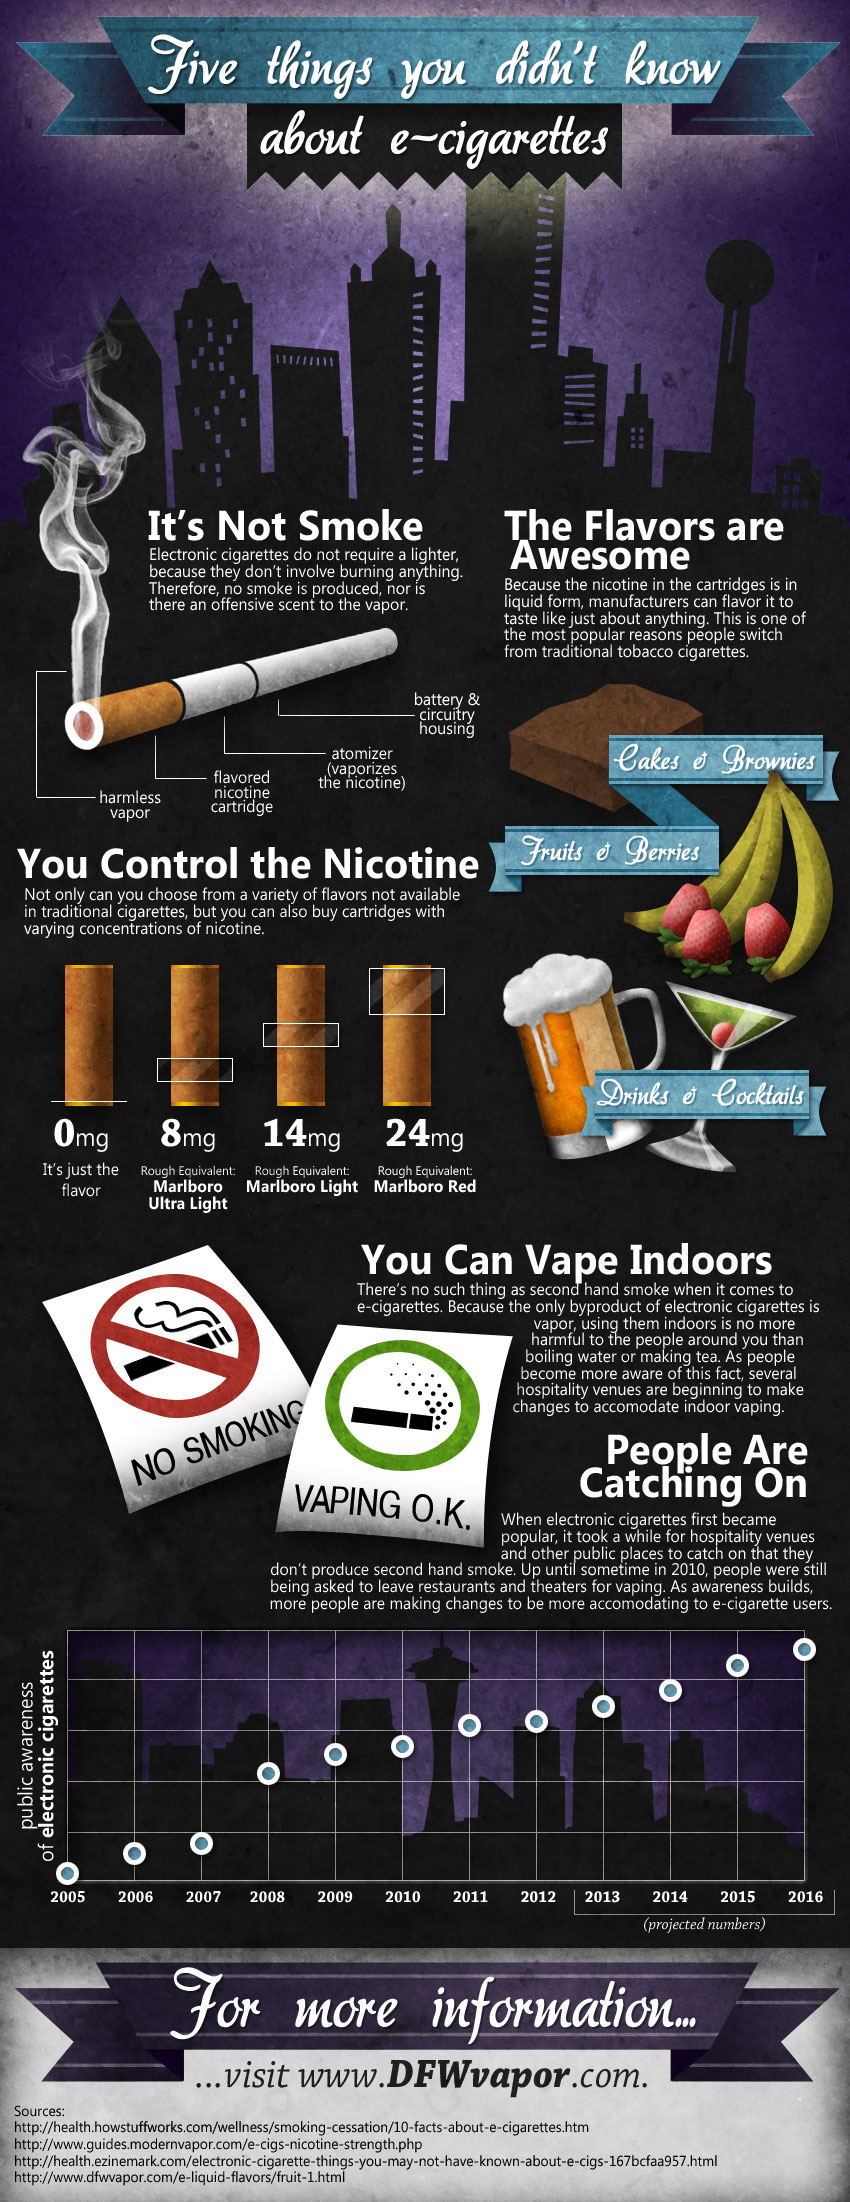 Facts-About-E-Cigarettes-Infographic